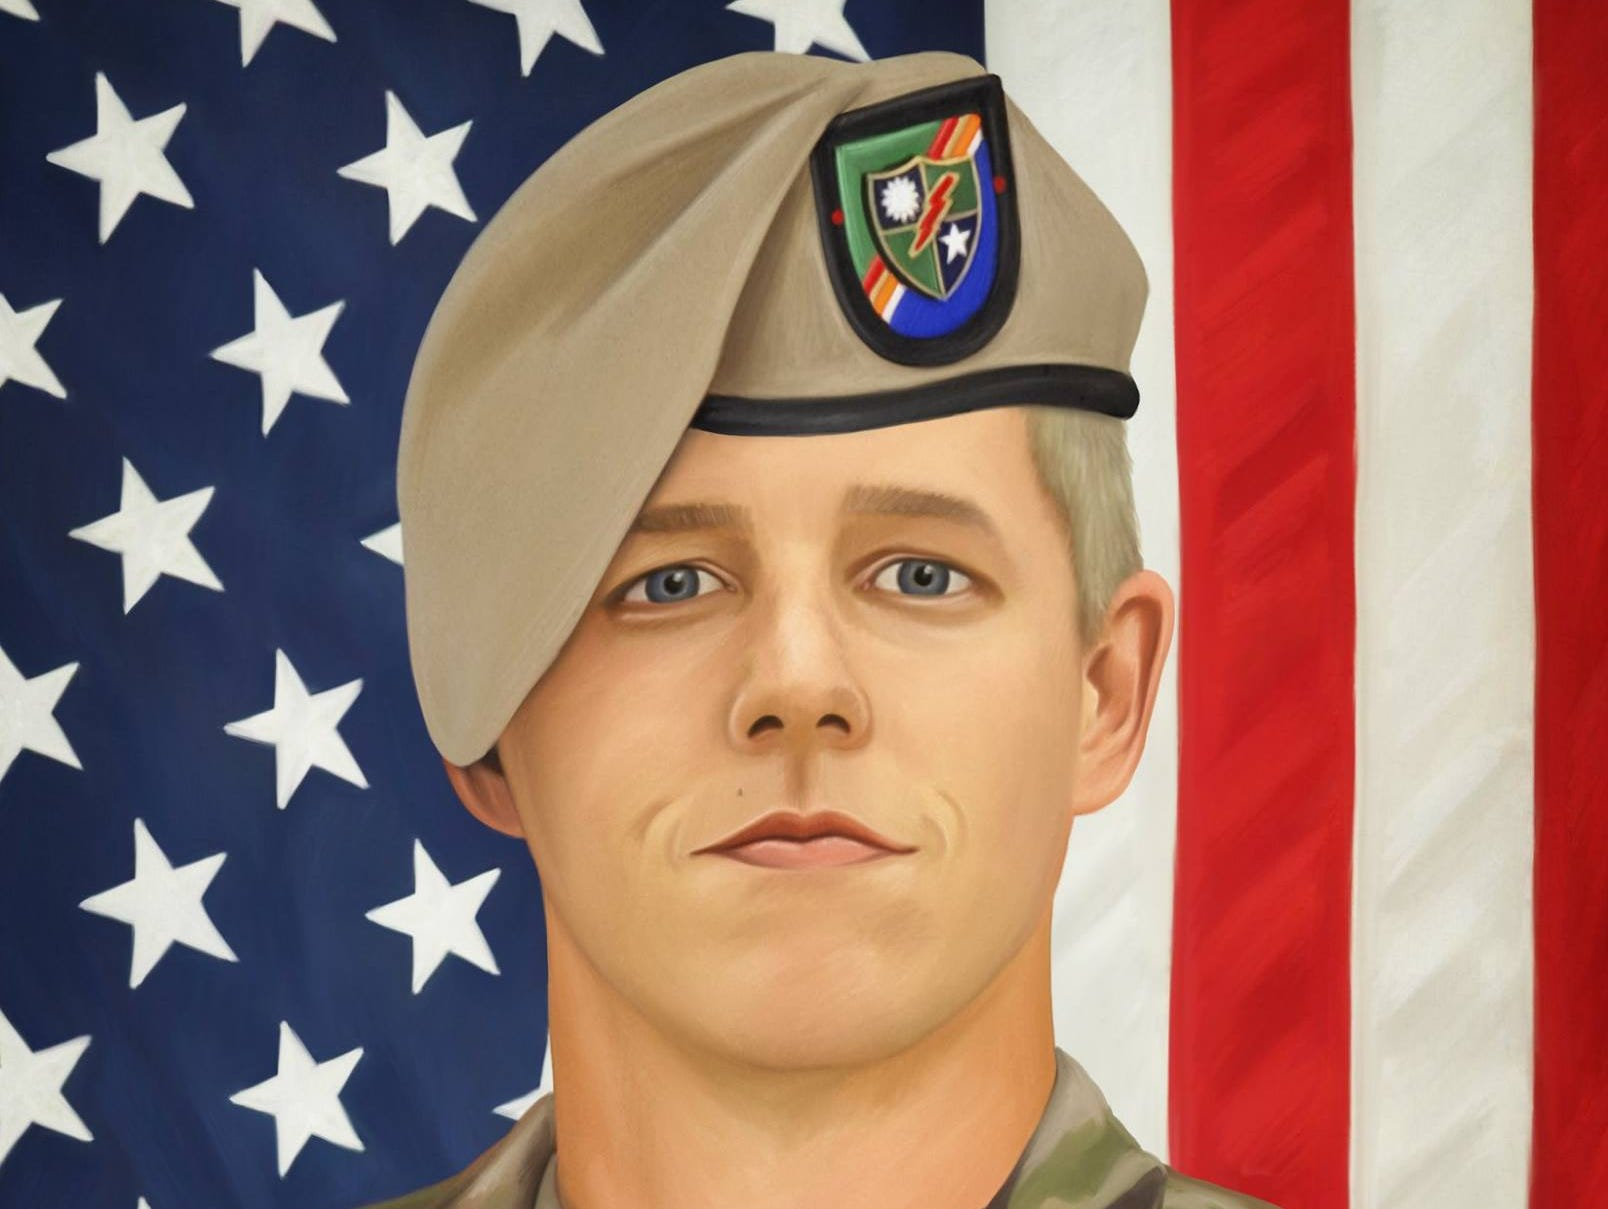 On July 12th, U.S. Army Ranger (1-75) Sergeant First Class Christopher Celiz was killed during a firefight with taliban forces in the Paktia Province of Afghanistan.Painting by Jonny Castro Art